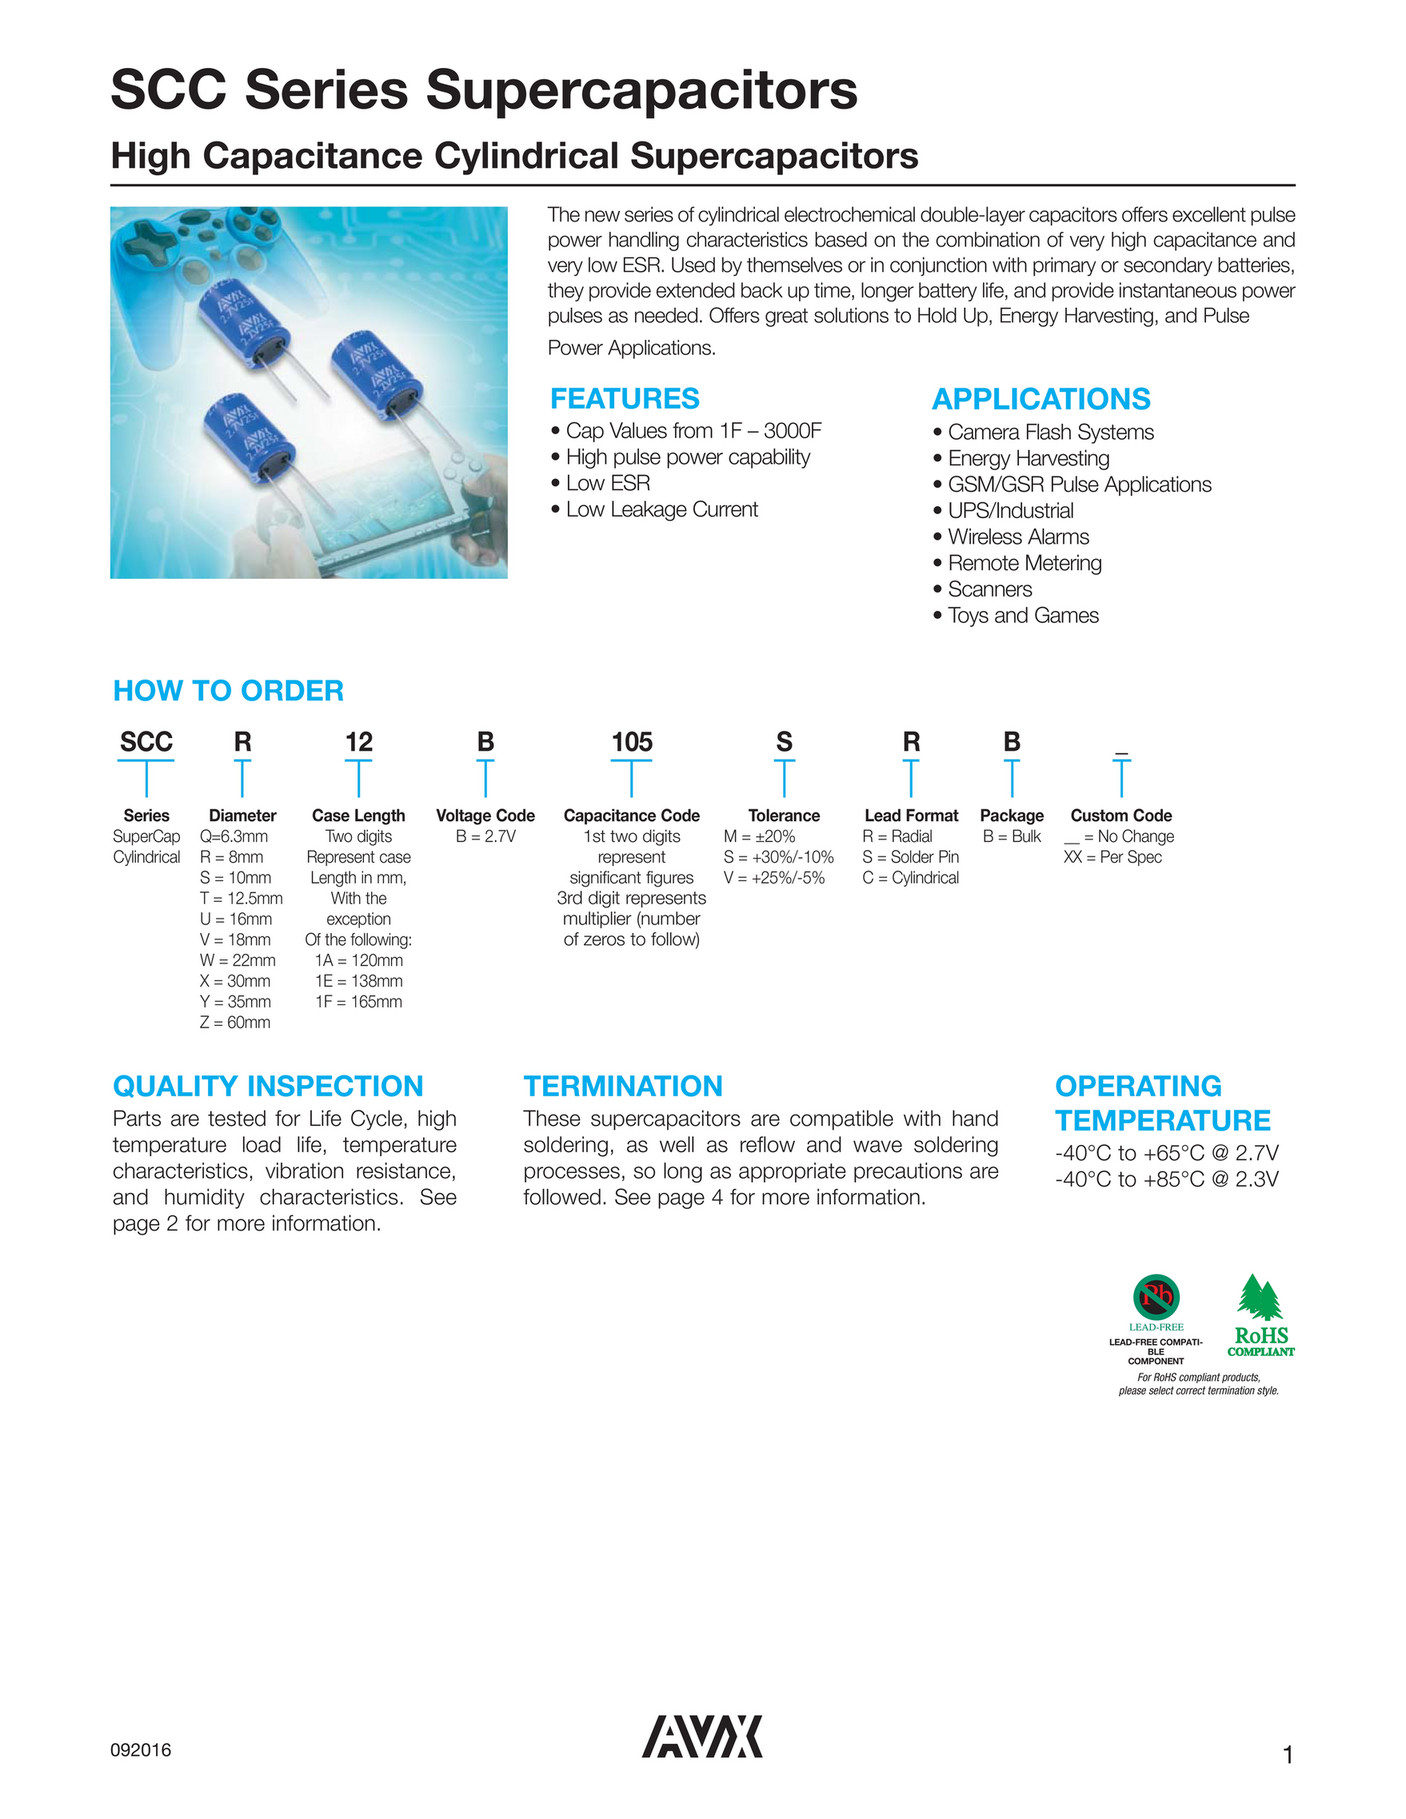 CAPACITOR FAKS - AVX SCC Series Supercapacitors - Page 1